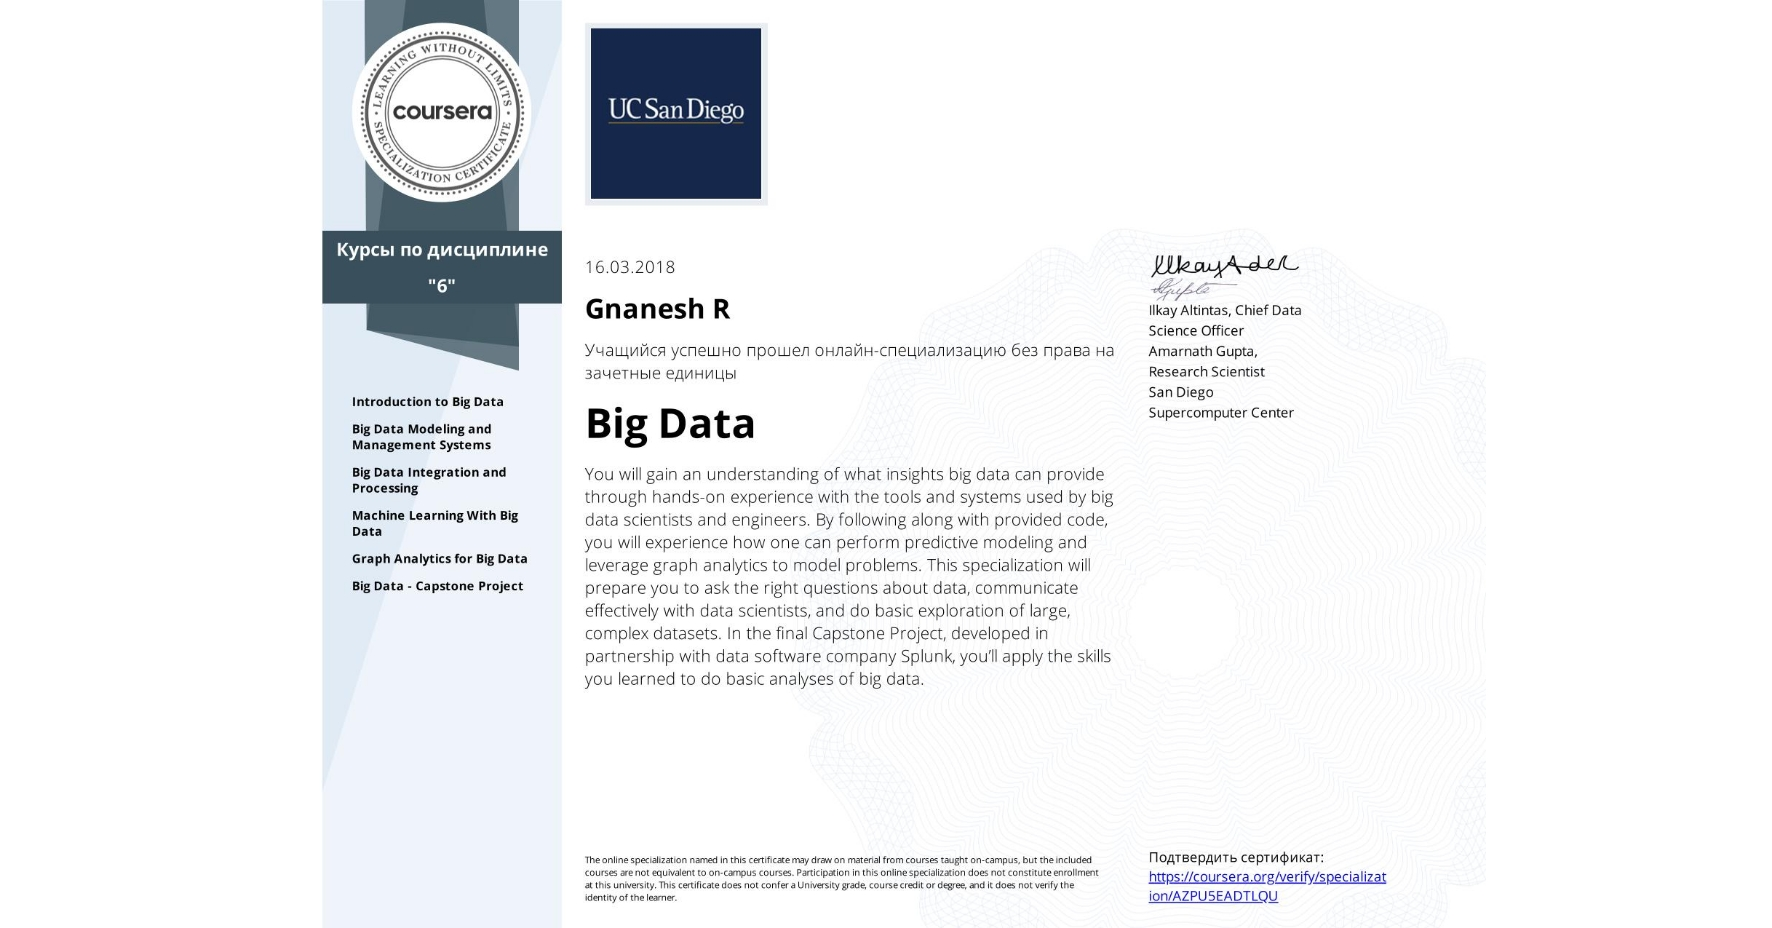 View certificate for Gnanesh R, Big Data, offered through Coursera. You will gain an understanding of what insights big data can provide through hands-on experience with the tools and systems used by big data scientists and engineers.  By following along with provided code, you will experience how one can perform predictive modeling and leverage graph analytics to model problems. This specialization will prepare you to ask the right questions about data, communicate effectively with data scientists, and do basic exploration of large, complex datasets. In the final Capstone Project, developed in partnership with data software company Splunk, you'll apply the skills you learned to do basic analyses of big data.